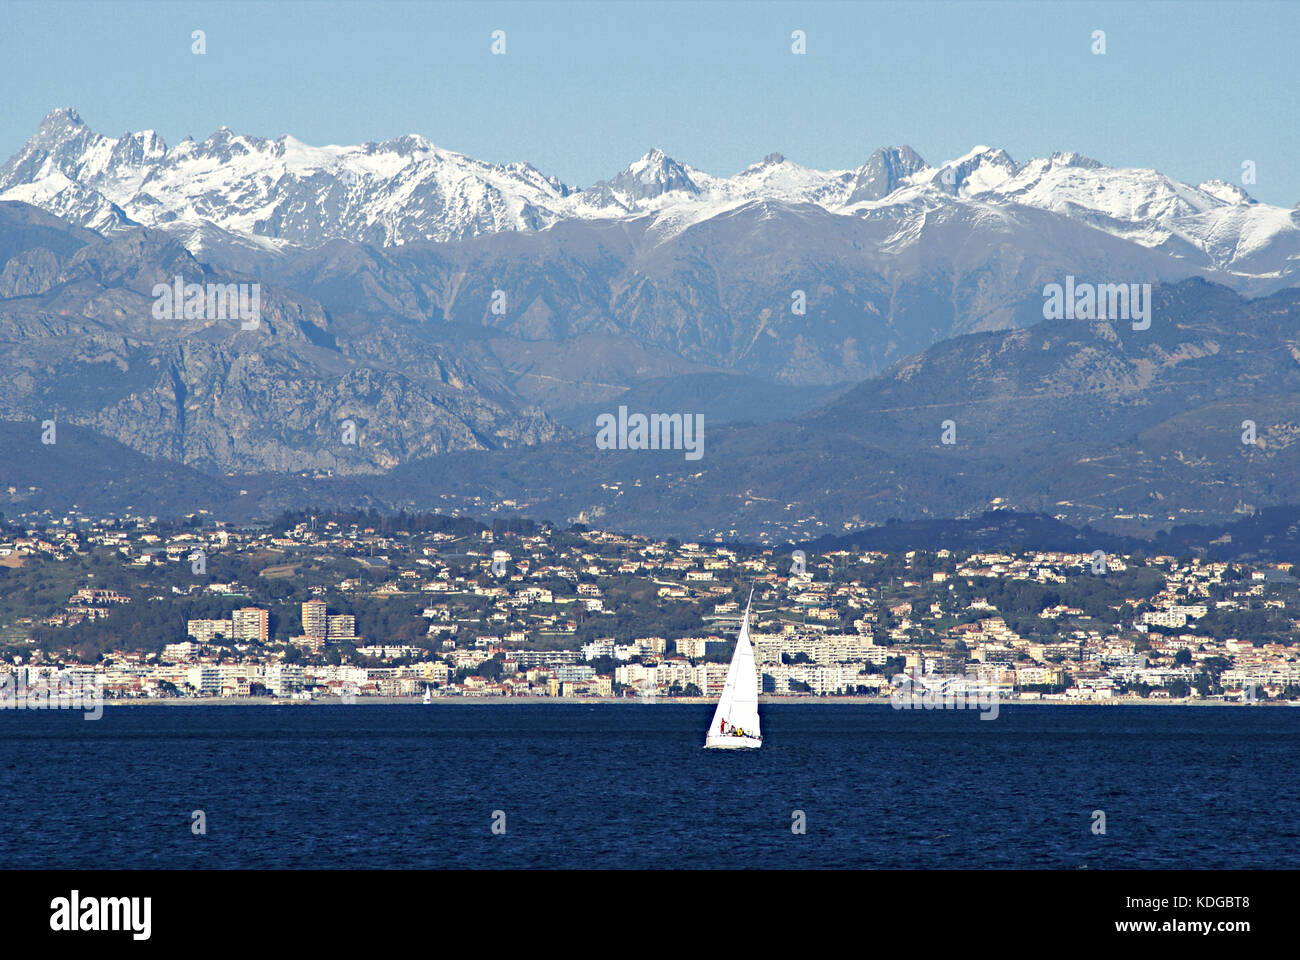 winter-view-of-the-coastline-close-to-the-city-of-nice-france-between-KDGBT8.jpg